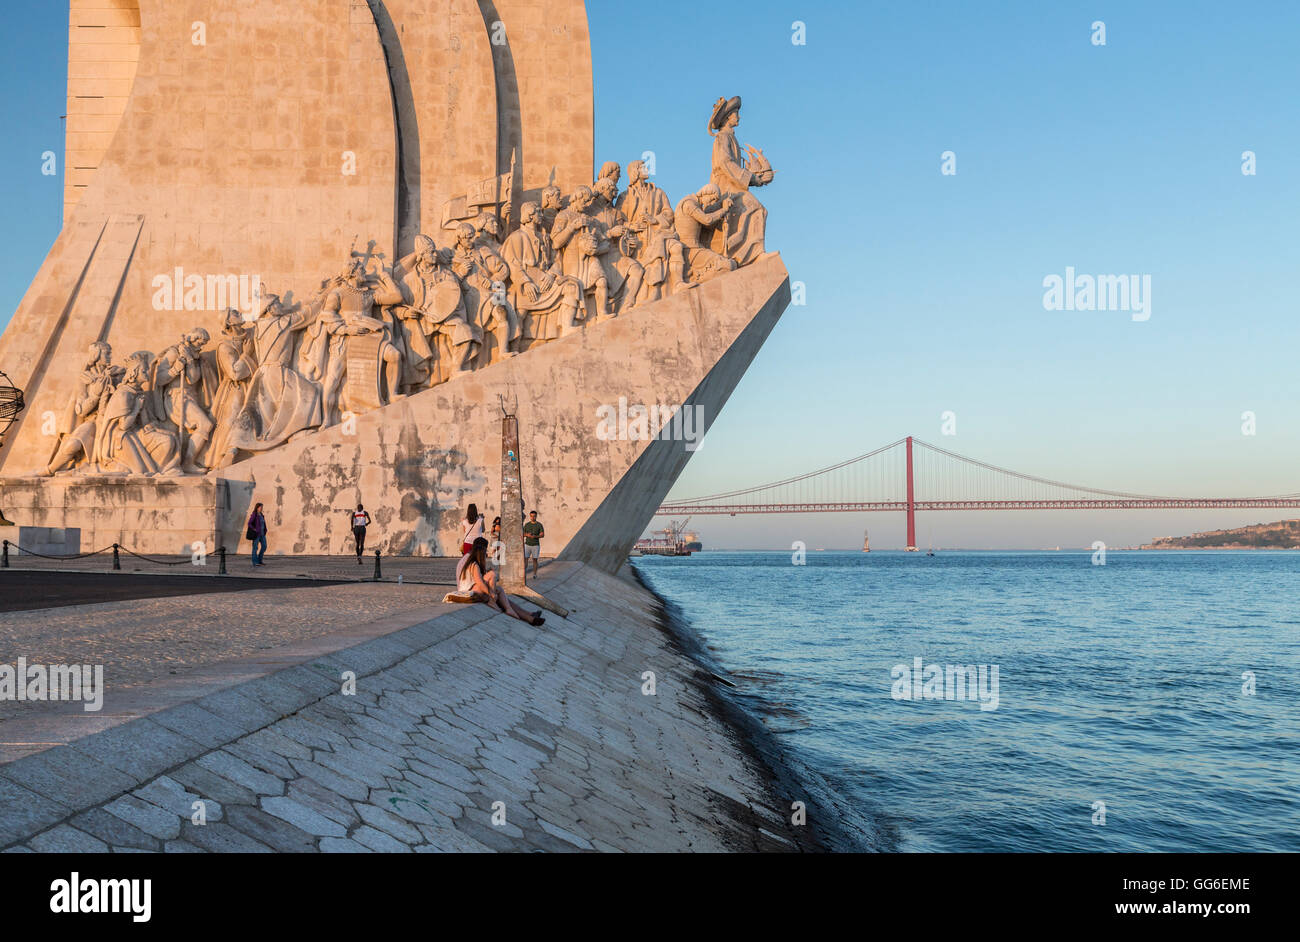 Sunset on the Padrao dos Descobrimentos (Monument to the Discoveries) by the Tagus River, Belem, Lisbon, Portugal, - Stock Image